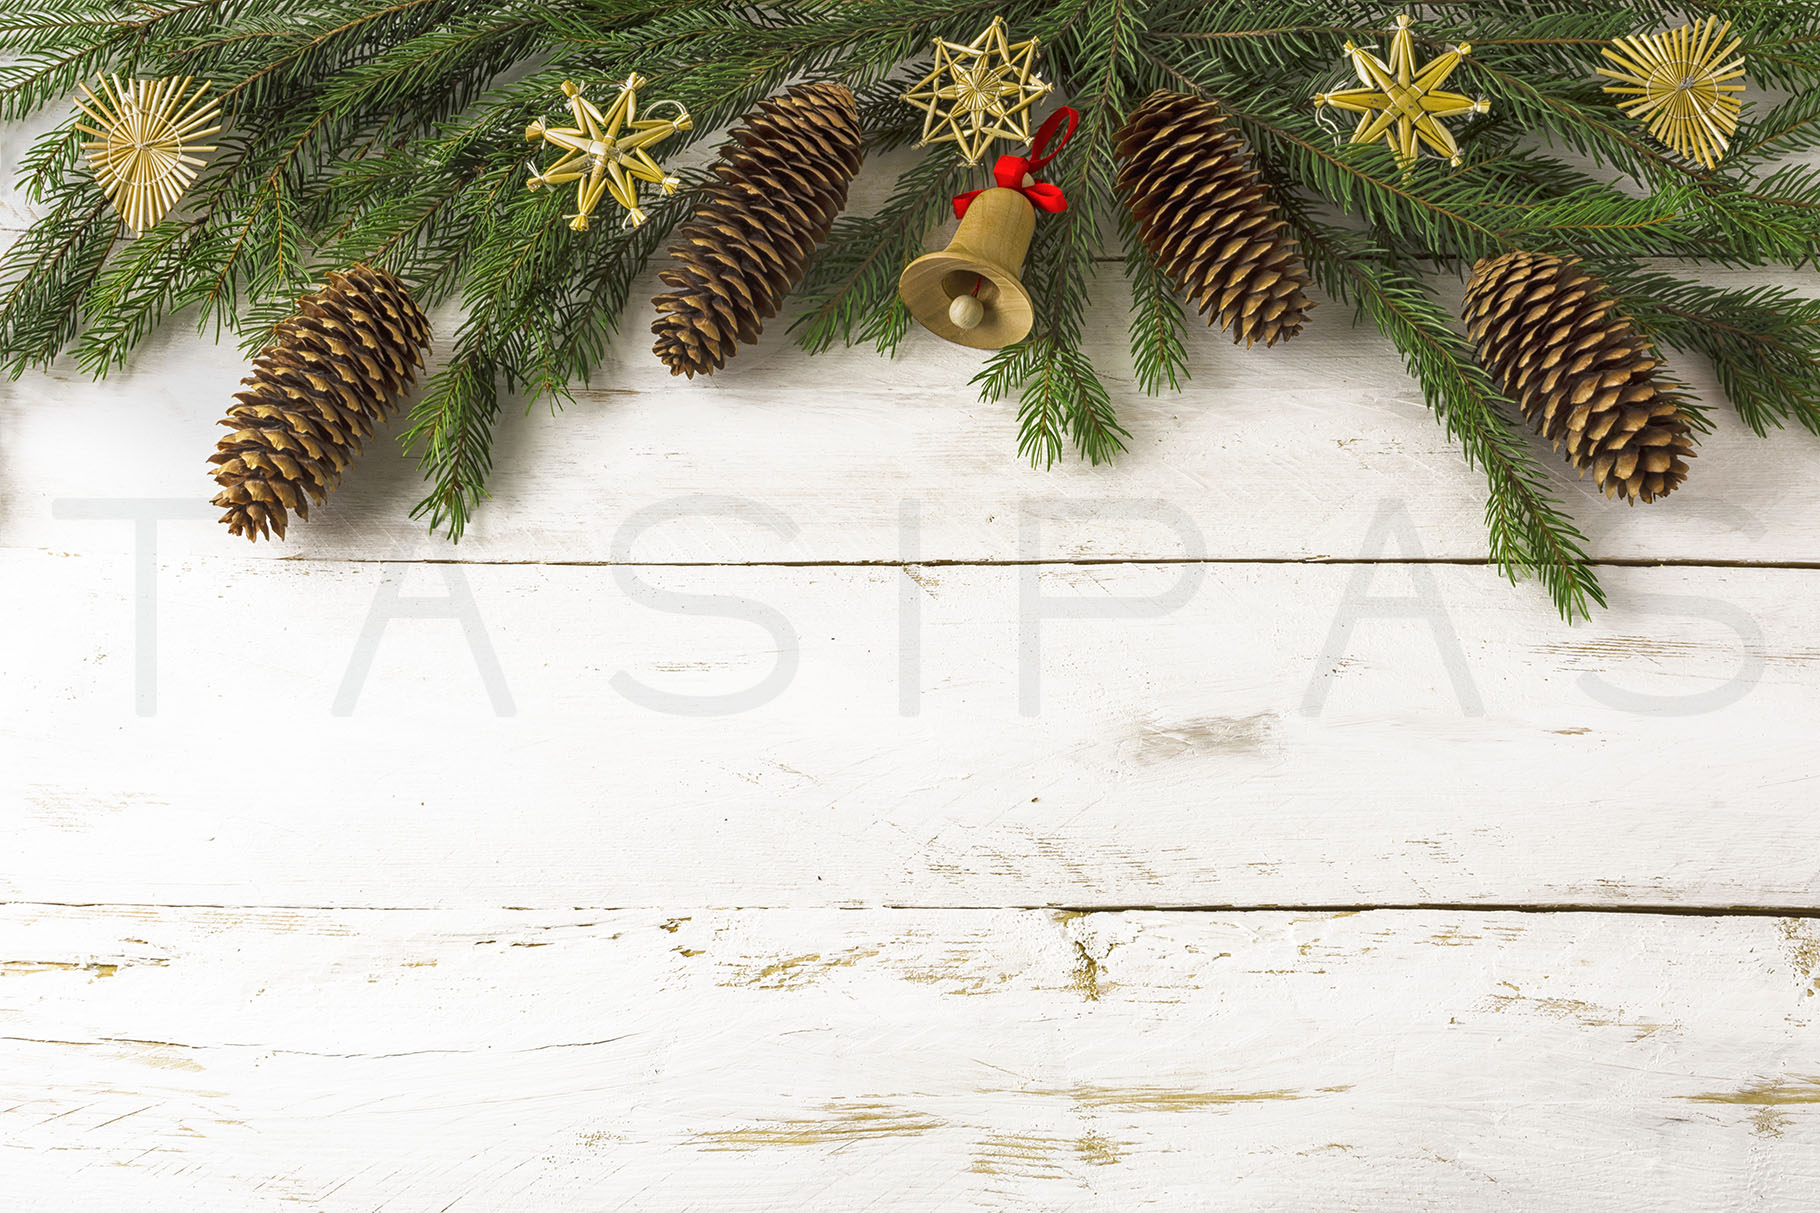 Christmas background wooden jingle bell 1820x1213